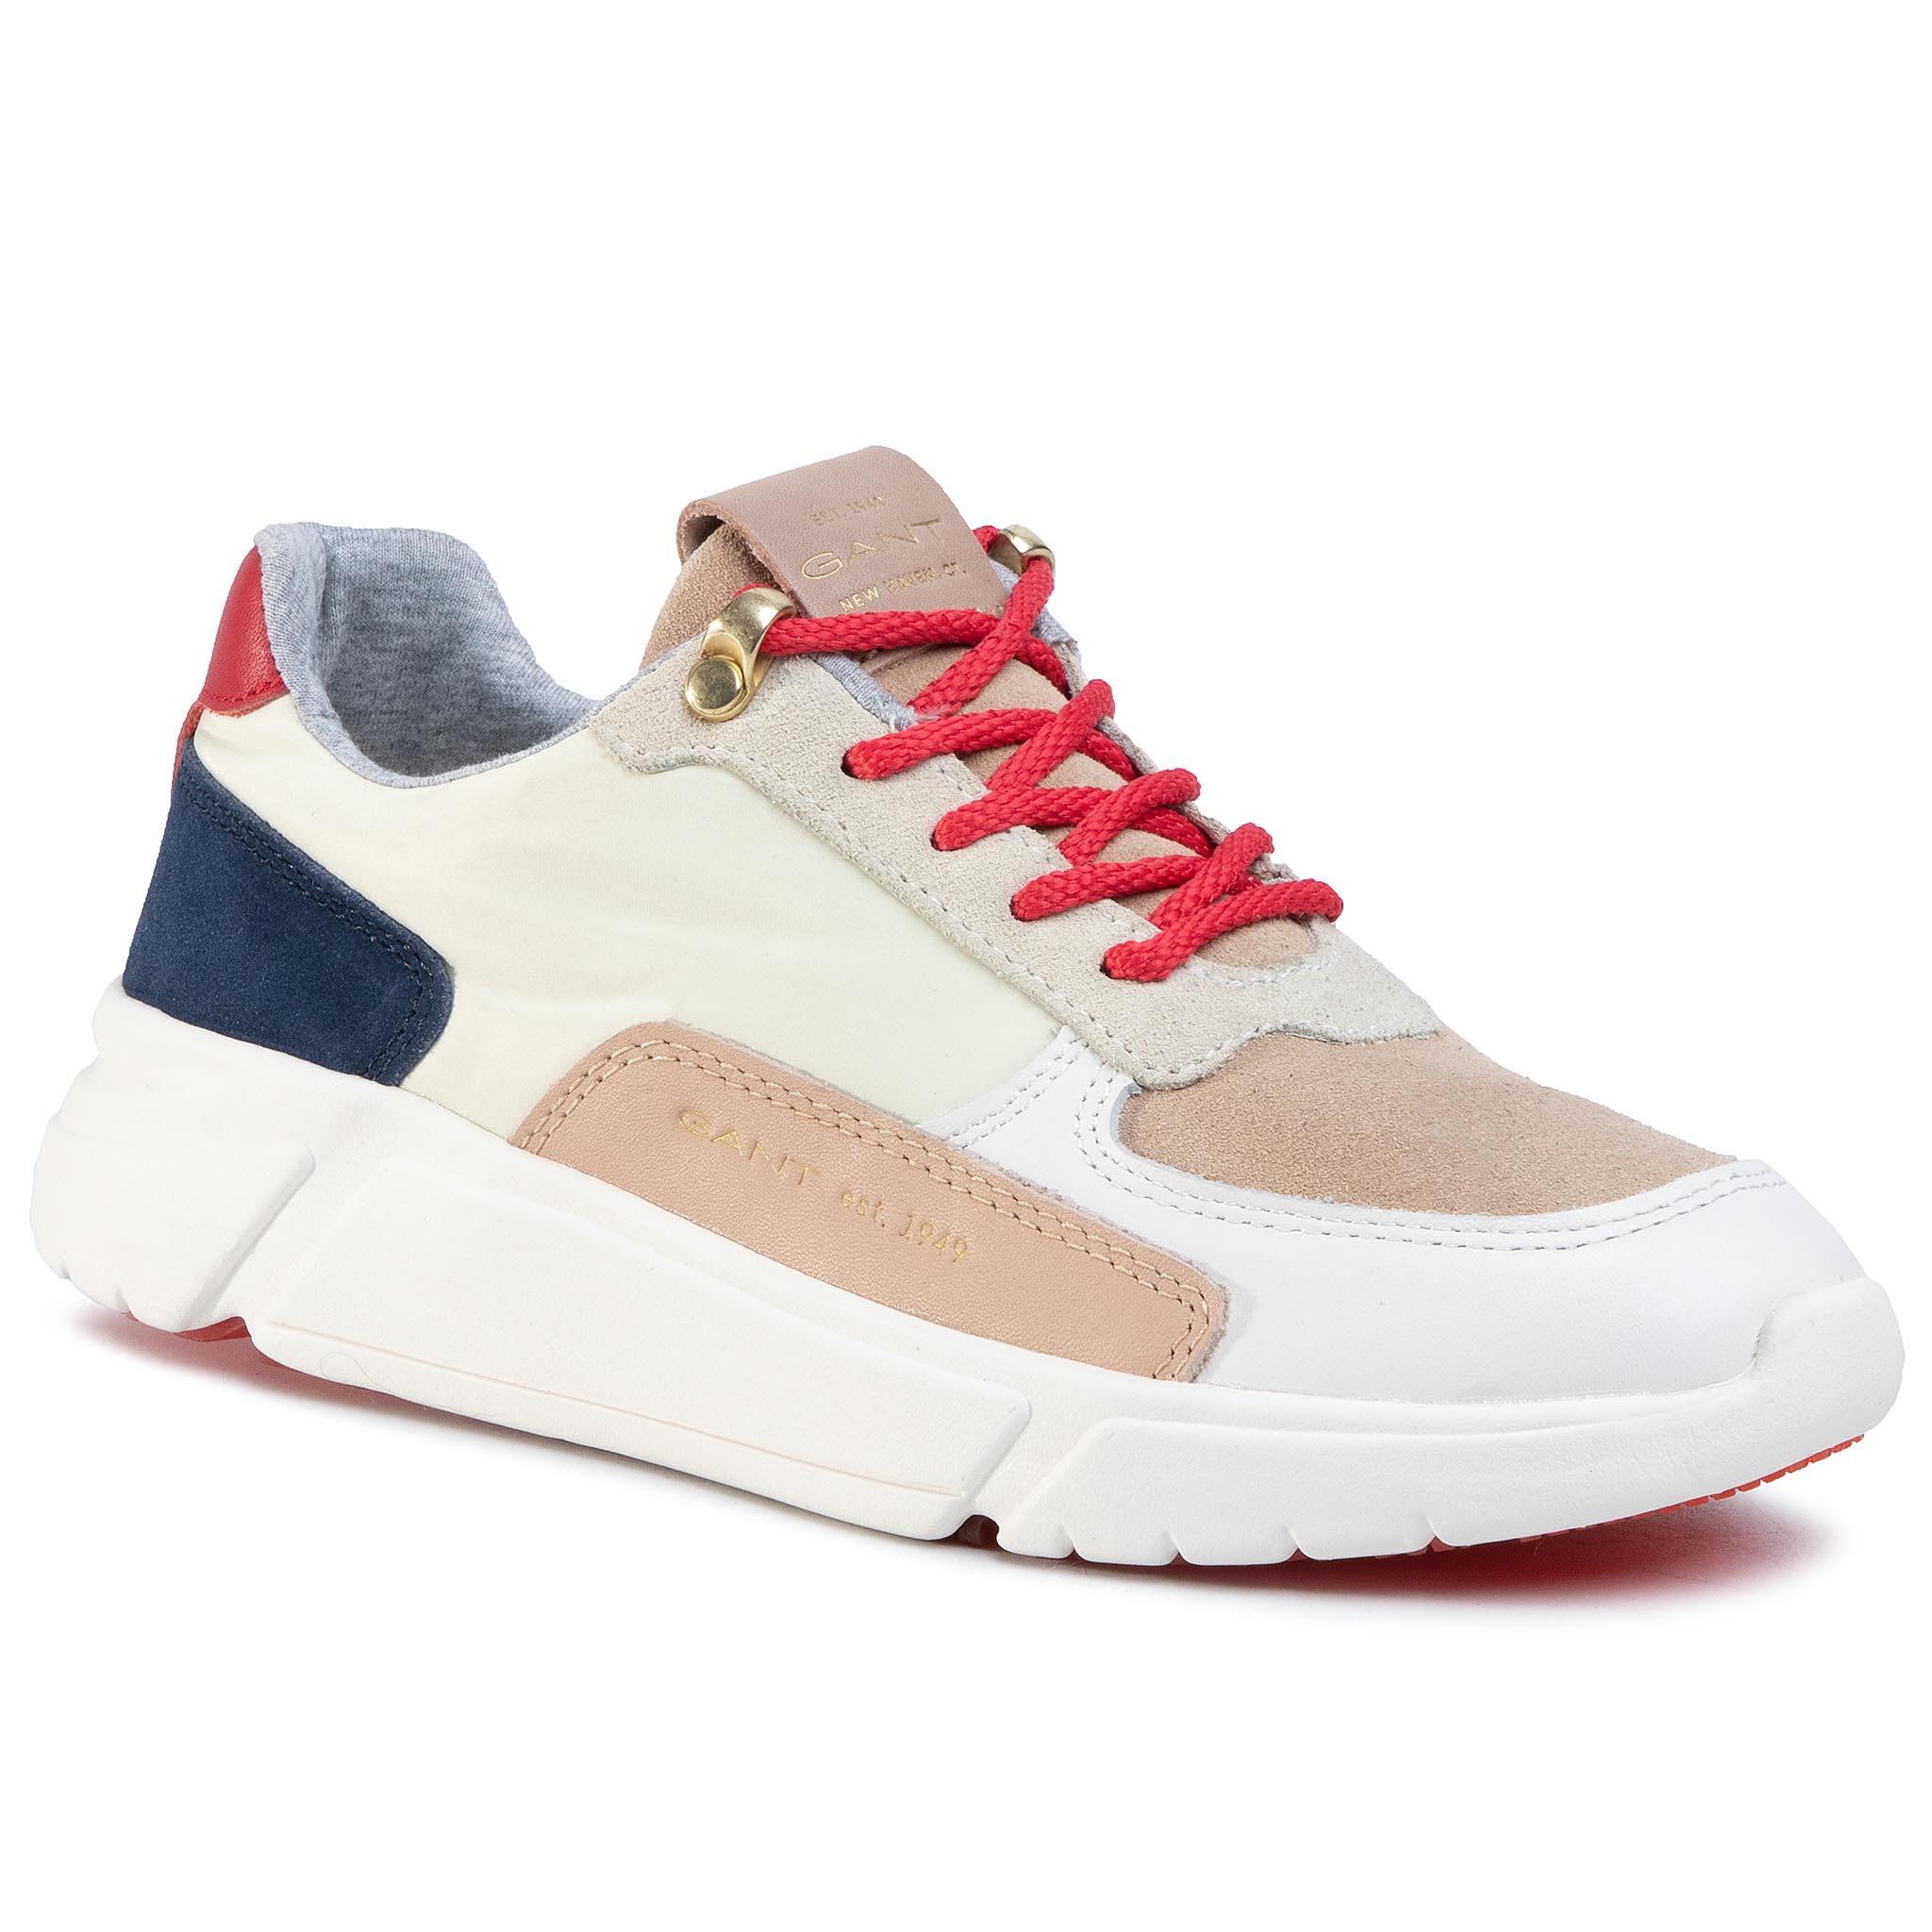 Sneakers GANT - Cocoville 20533535 Br.Wht/Bei/Red/Blue G293